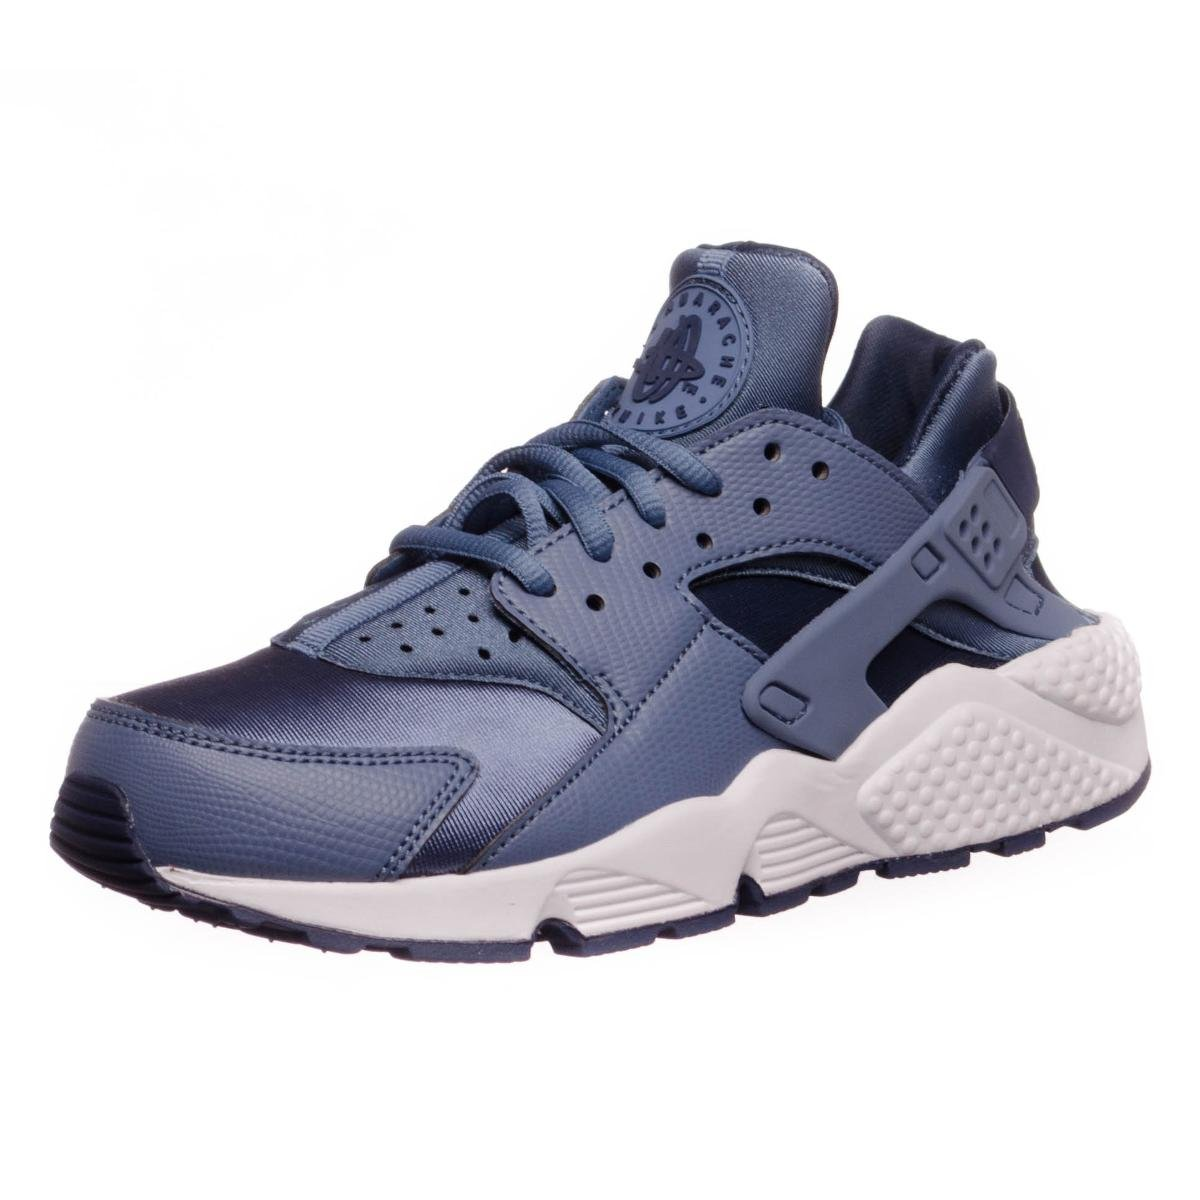 competitive price 9b584 a4325 Galleon - Nike Womens Air Huarache Trainers 634835 Sneakers Shoes (US 8,  Ocean Fog Midnight Navy White 406)